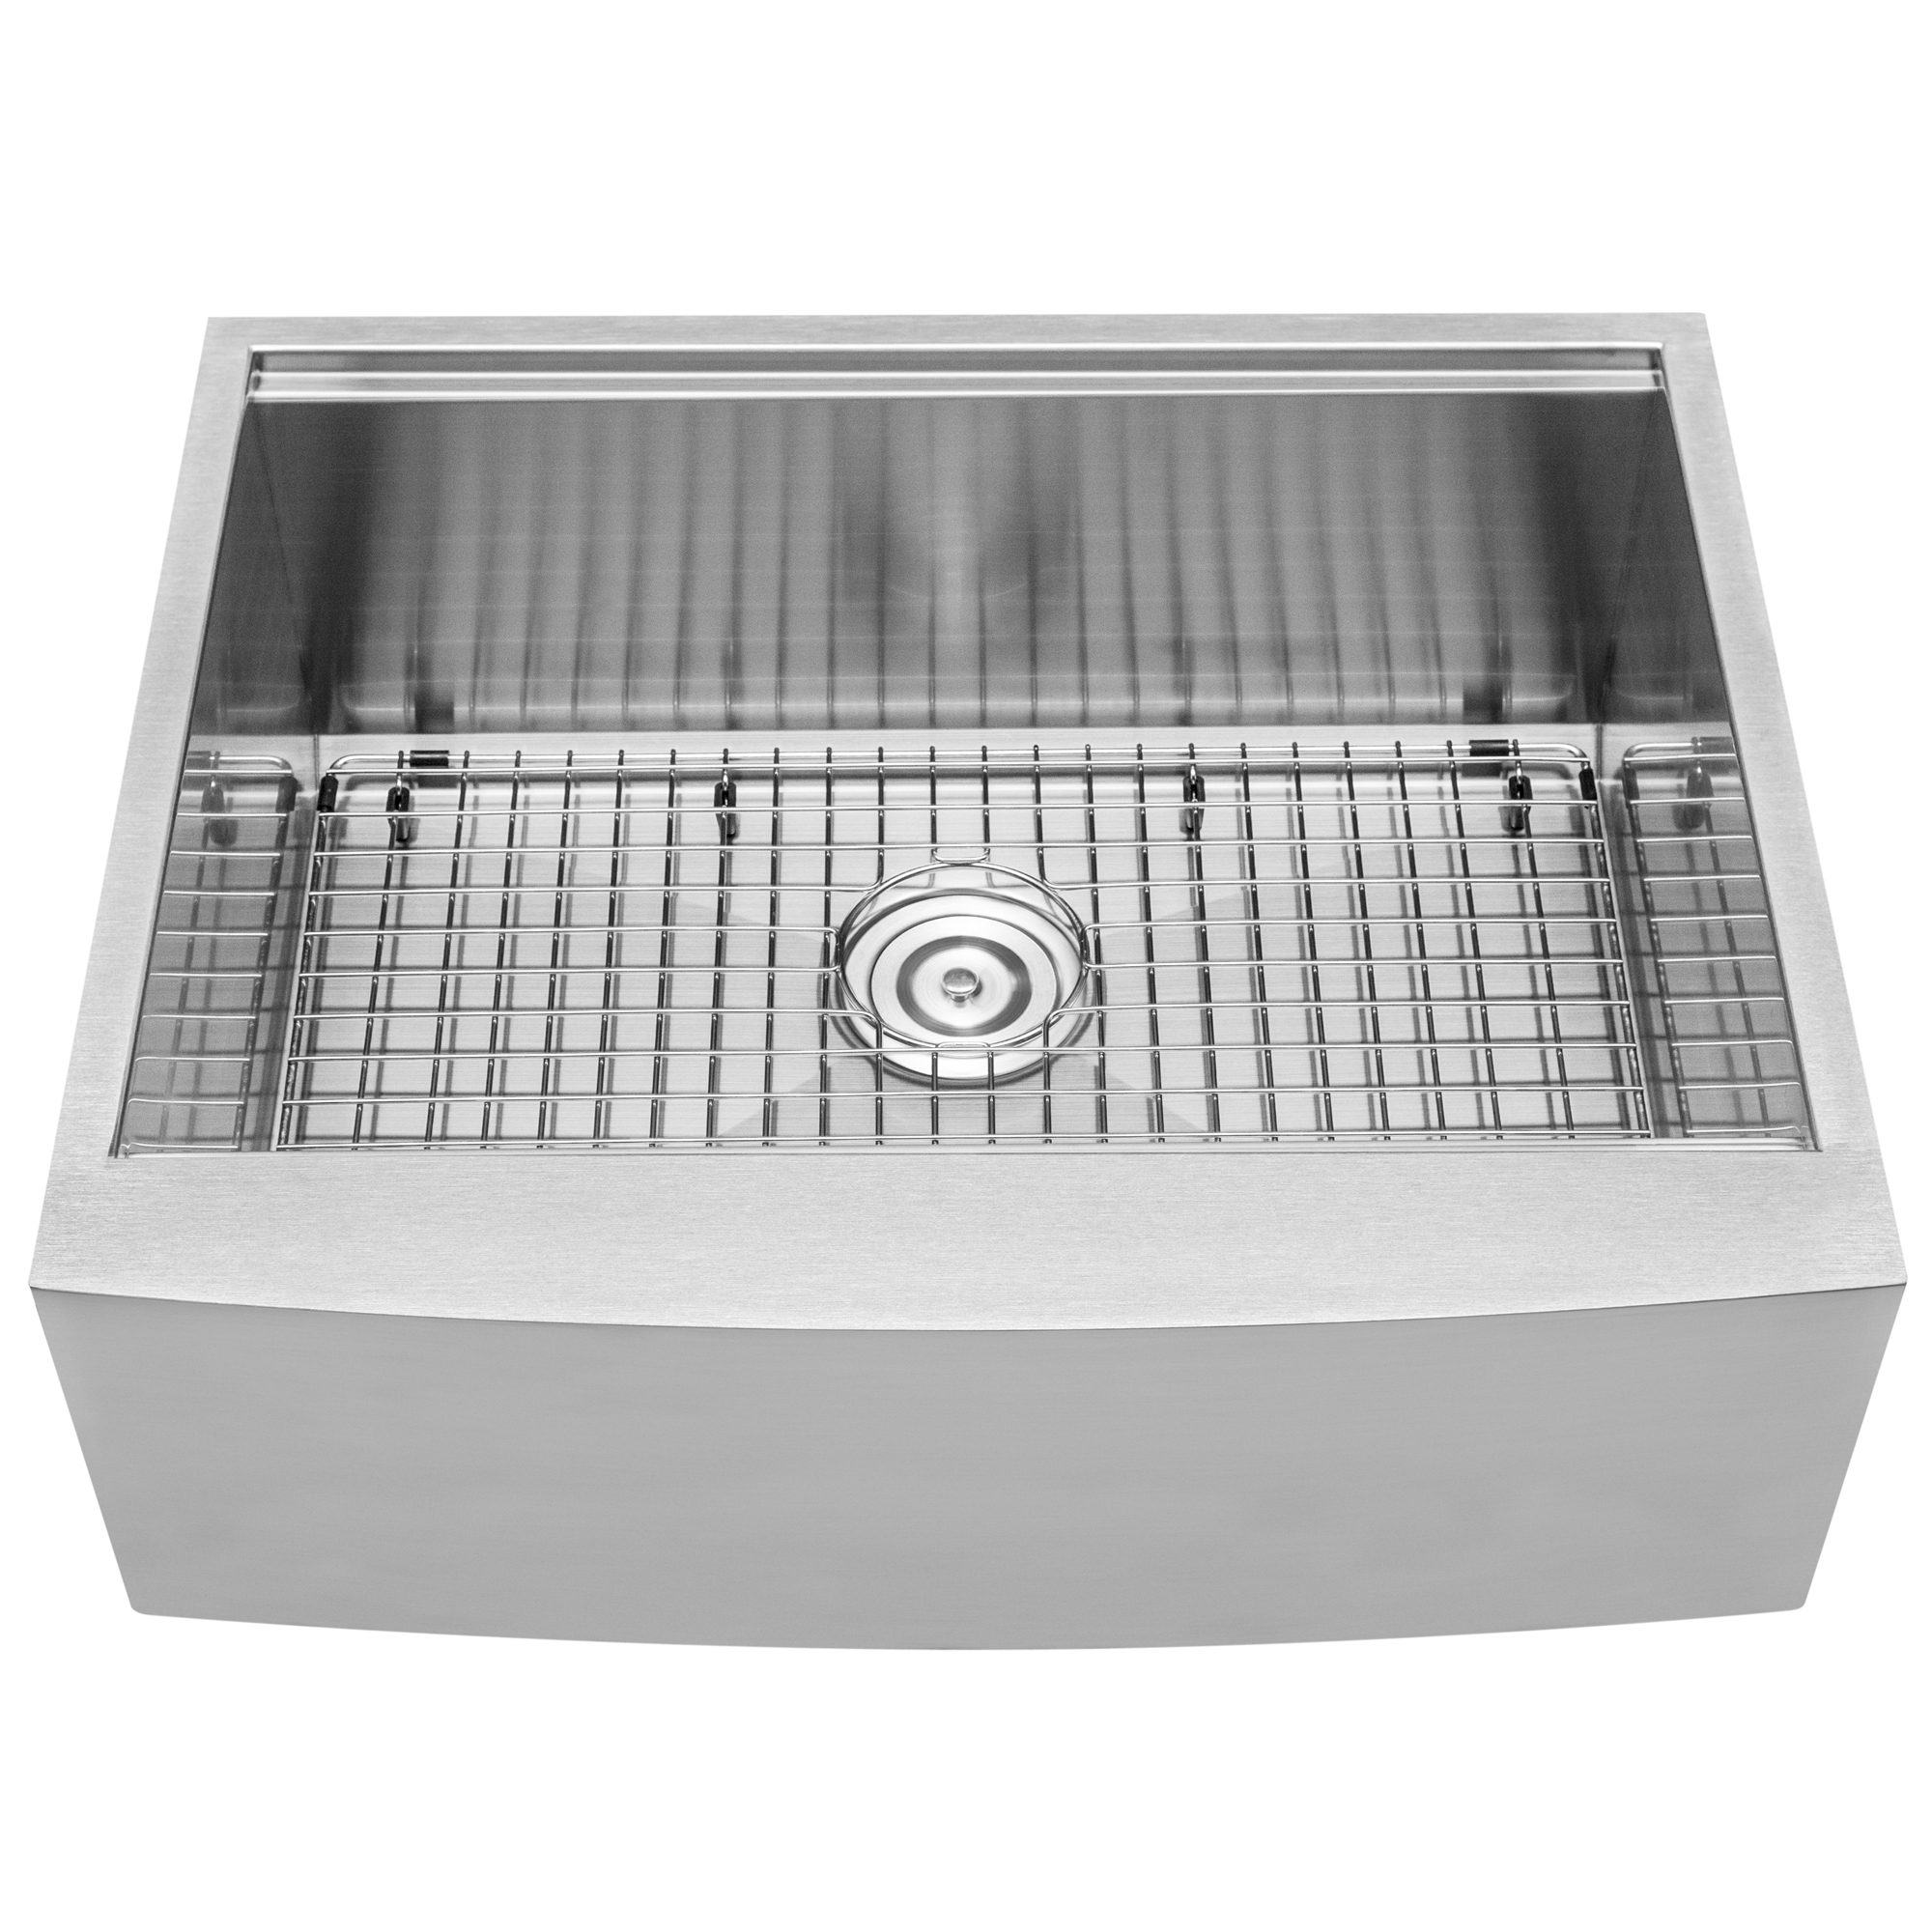 Single Basin Apron Sinks